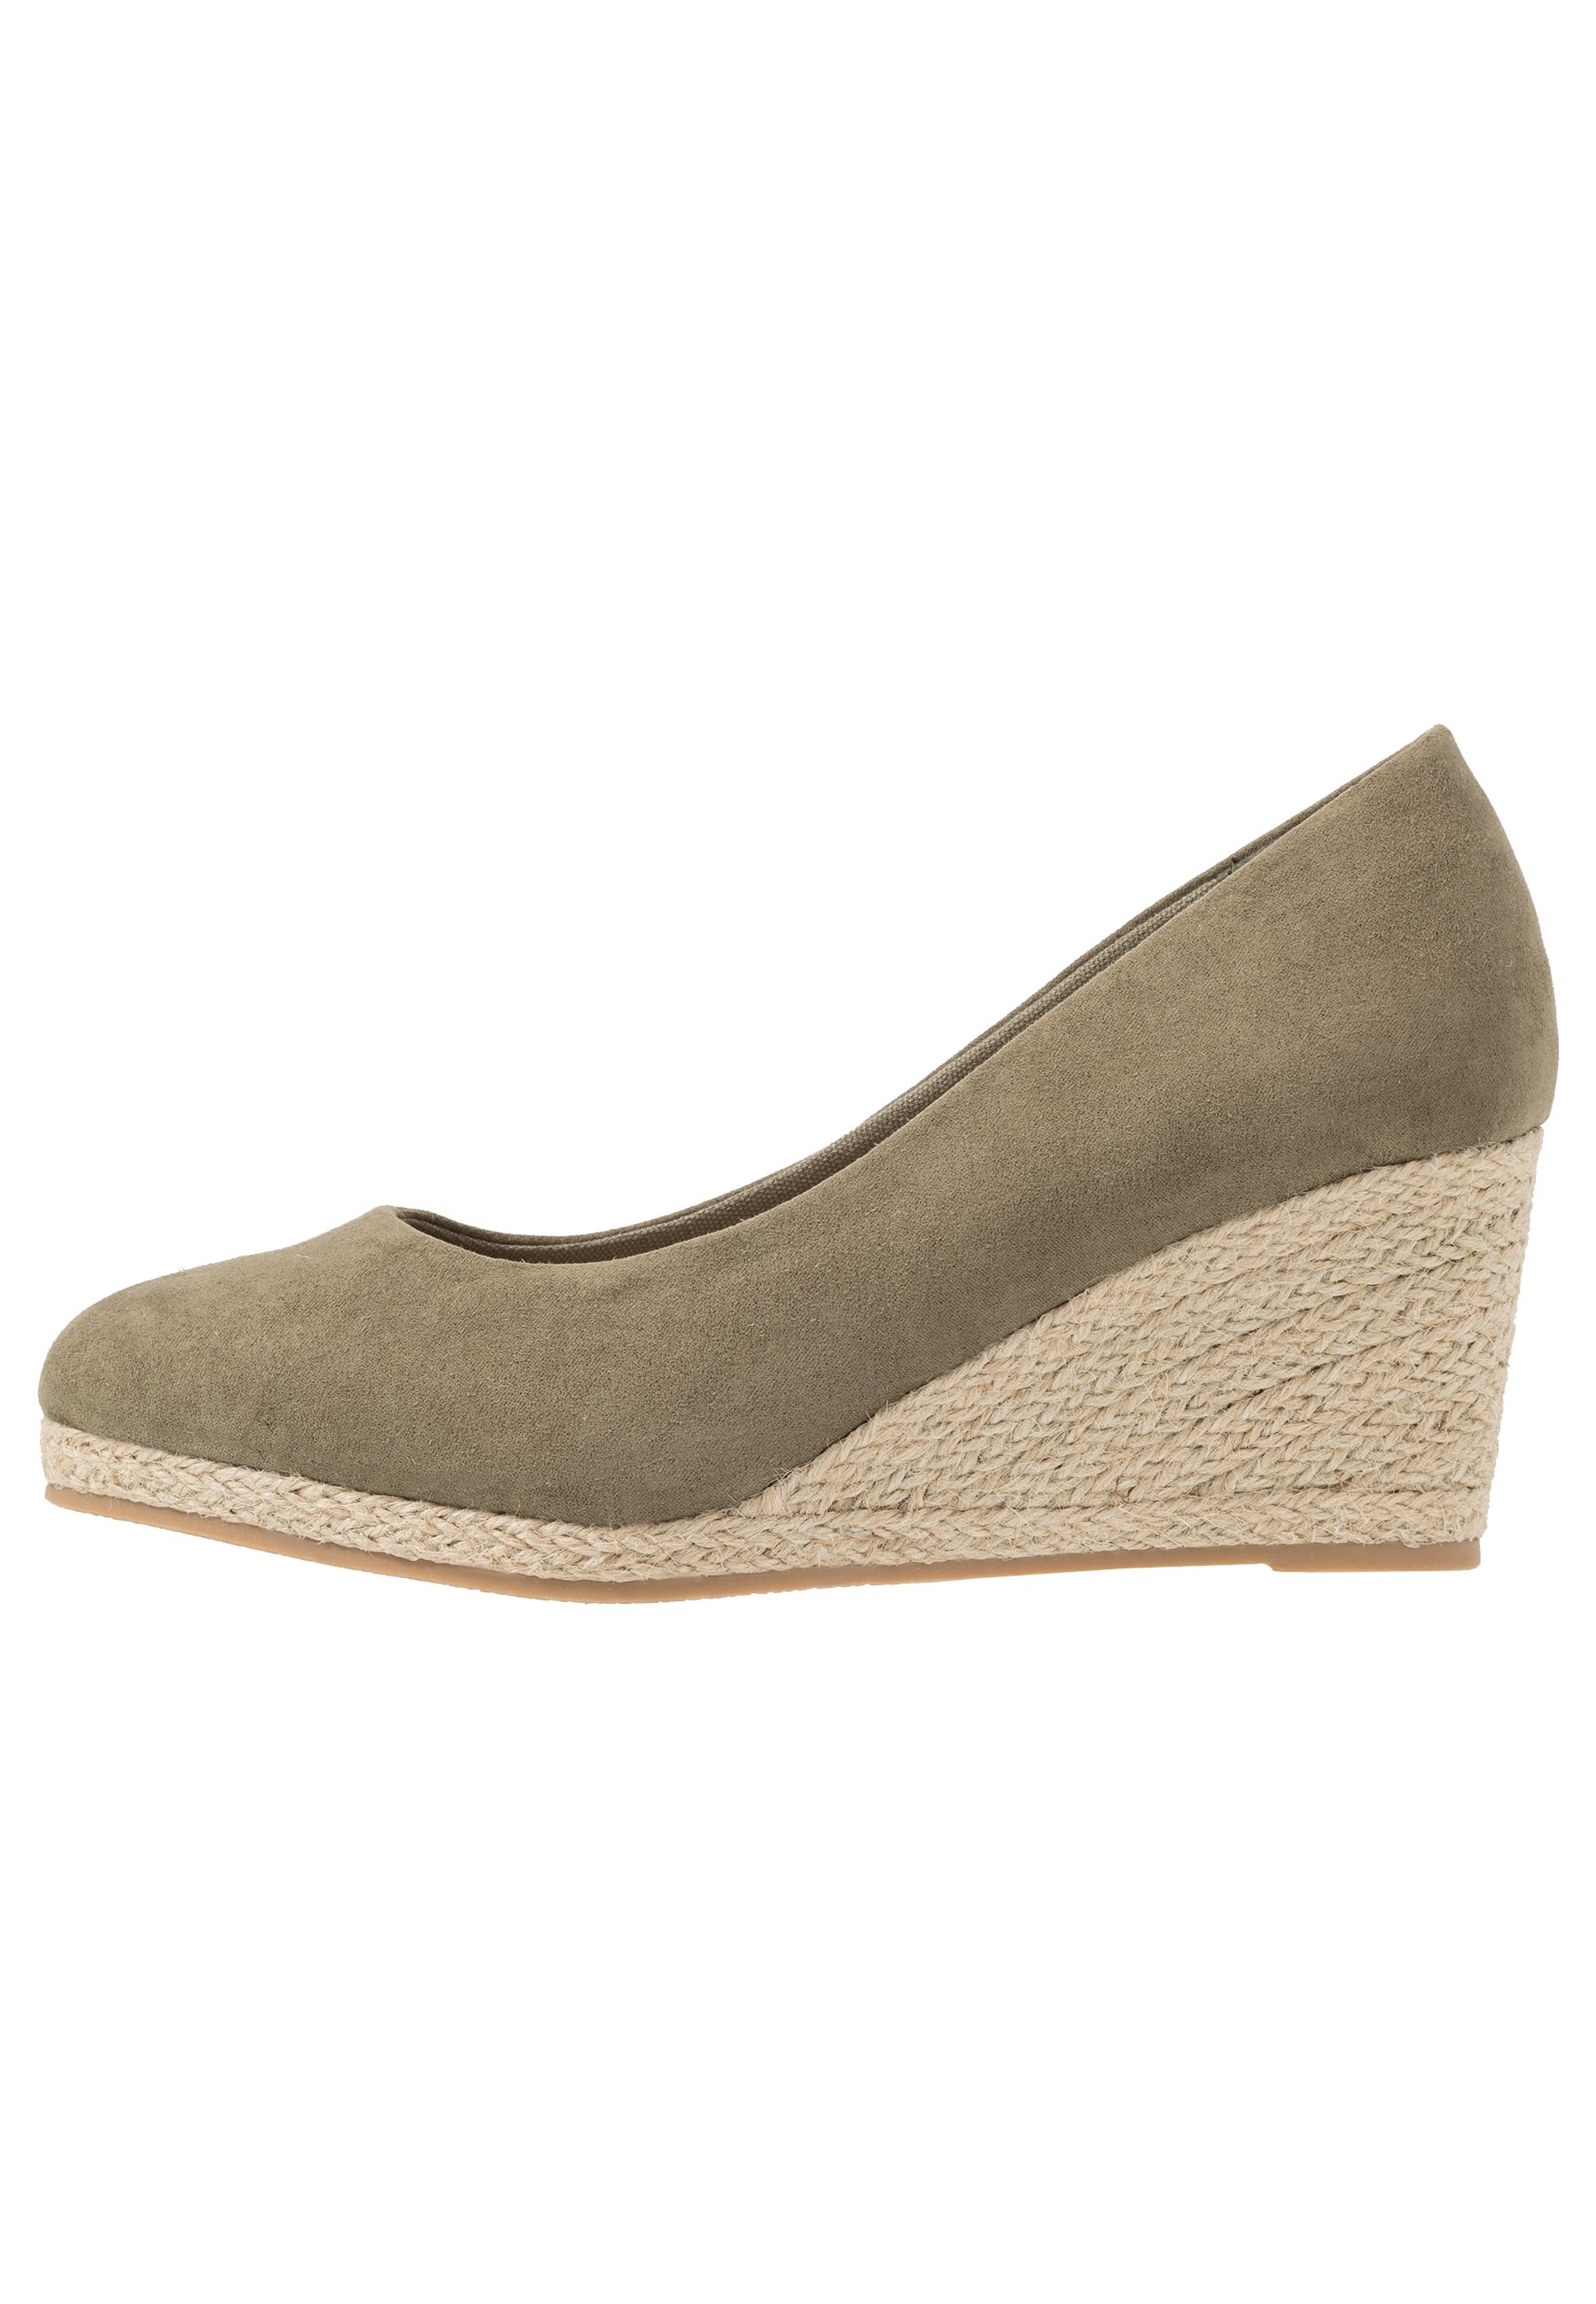 Evans WIDE FIT CLOSED TOE WEDGE